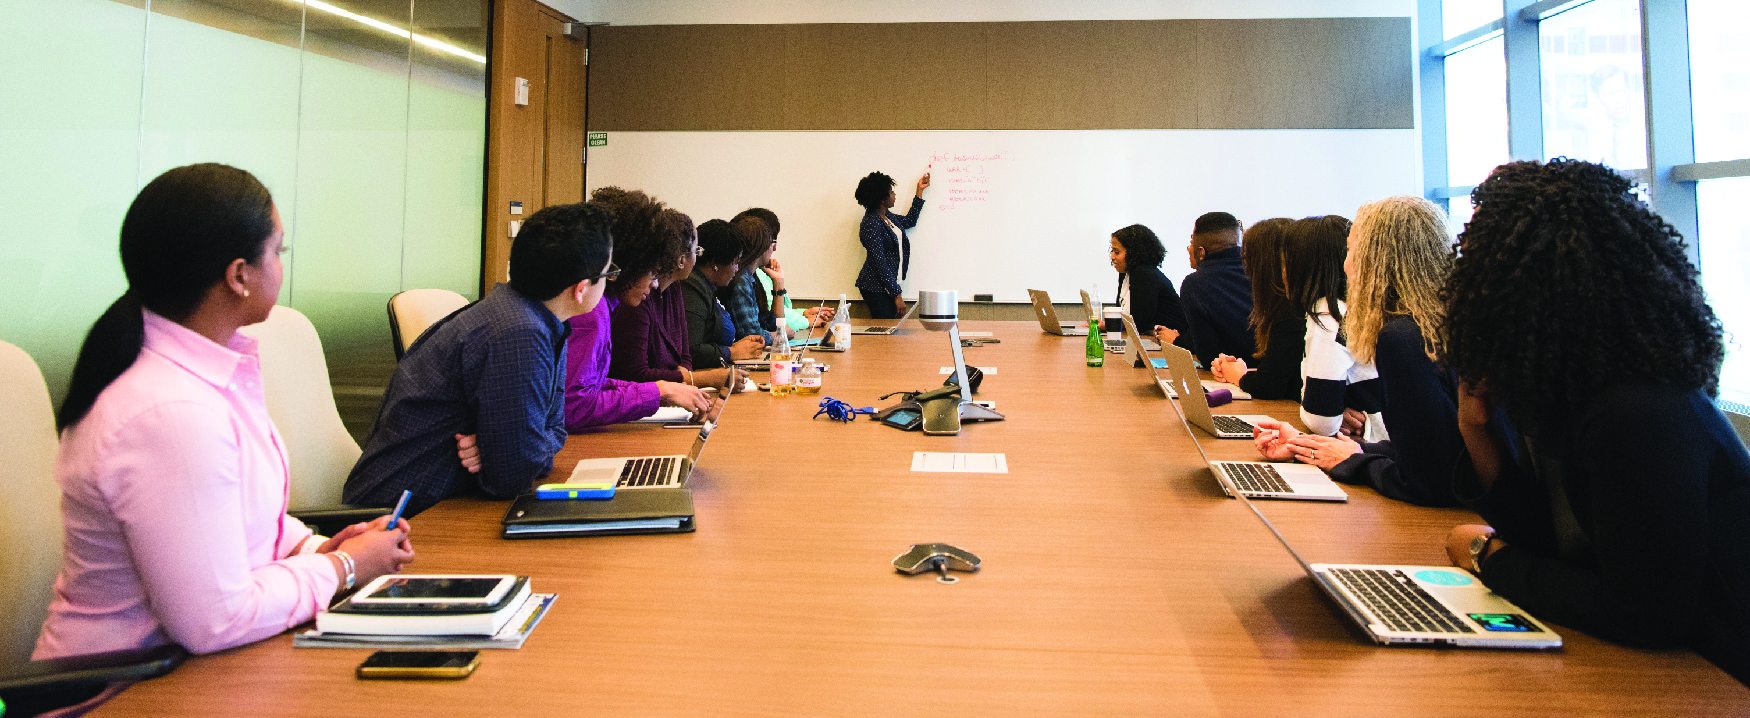 A photograph shows a group of people with laptops and notebooks sitting around a large conference table and looking up at someone writing on a board.